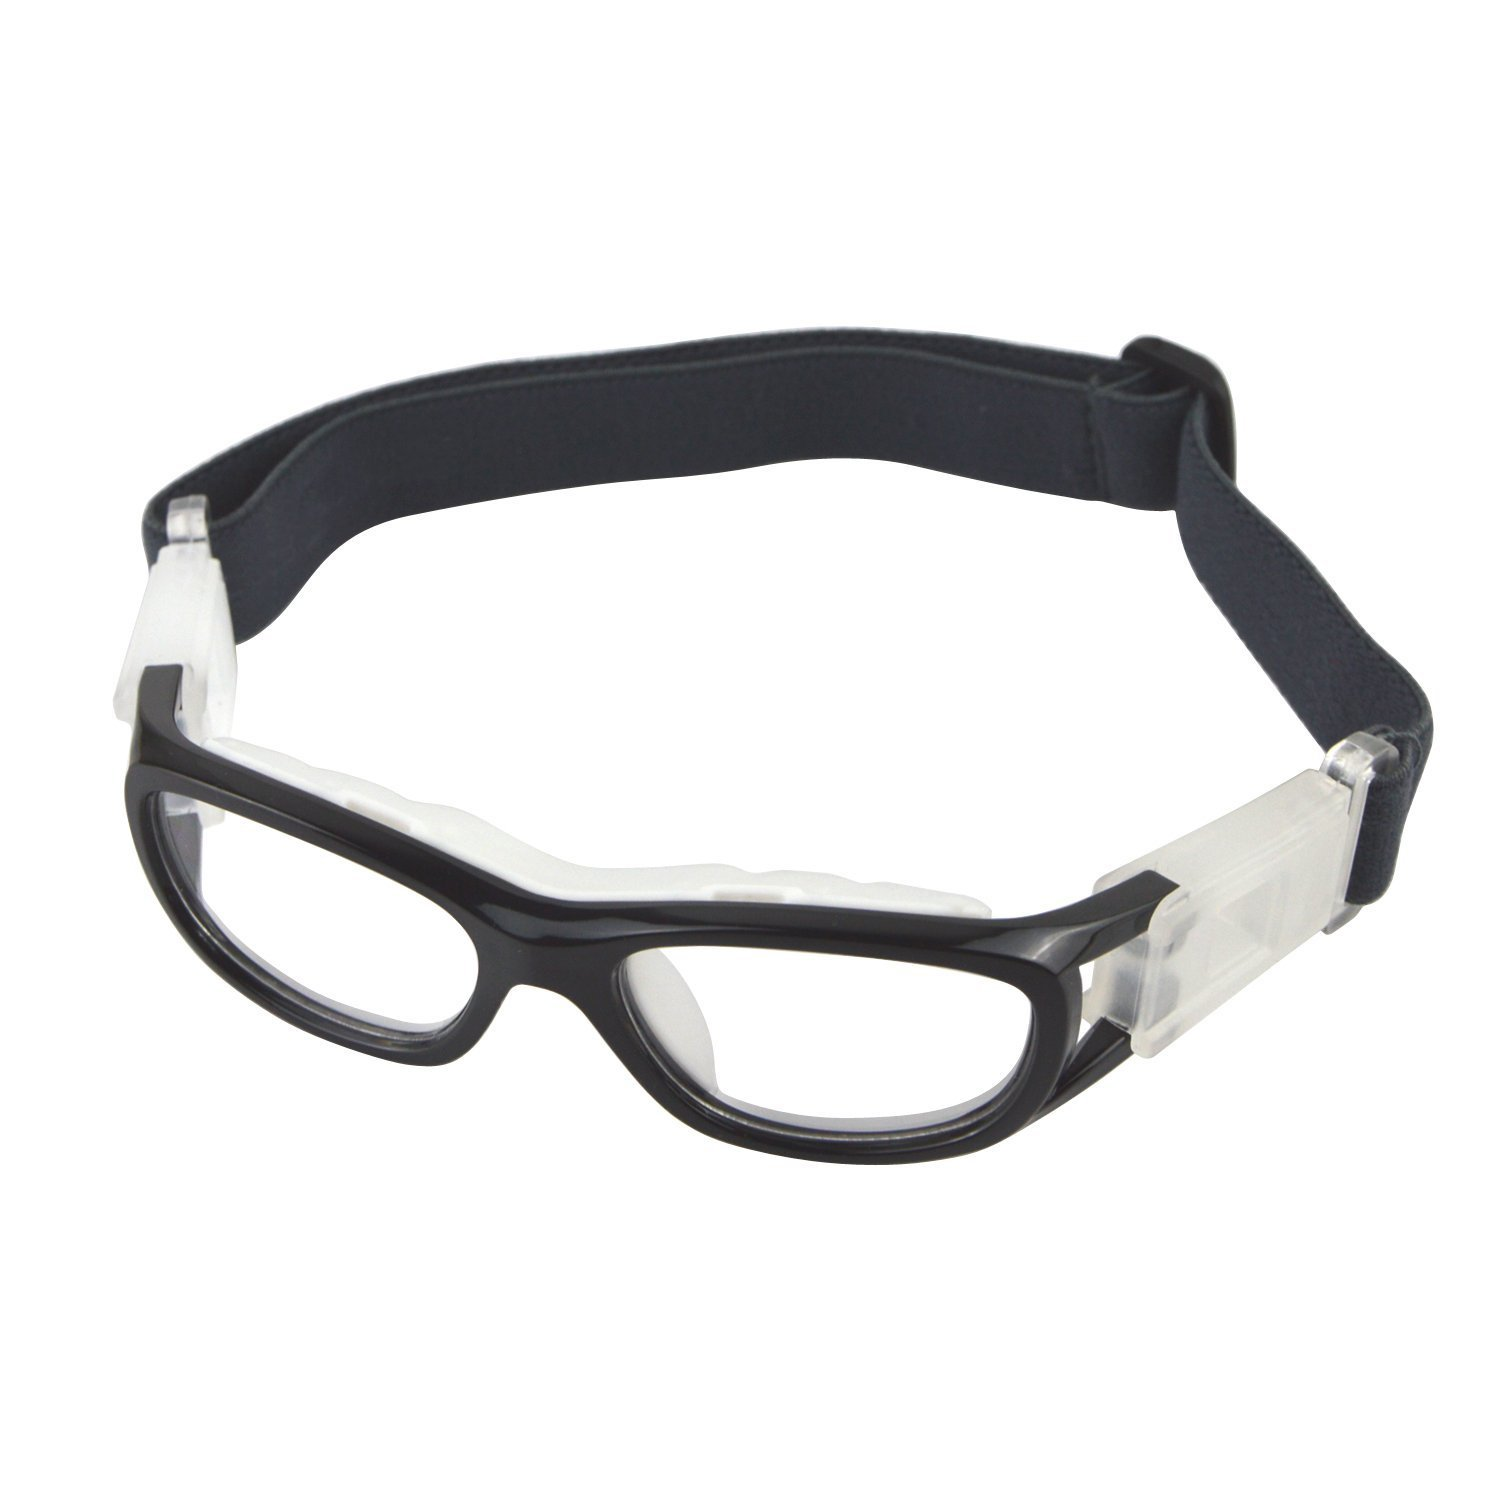 ed6bfda3dd EVERSPORT Kids Sports Goggles Safety Protective Basketball Glasses for  Children with Adjustable Strap for Basketball Football Volleyball Hockey  Rugby ...